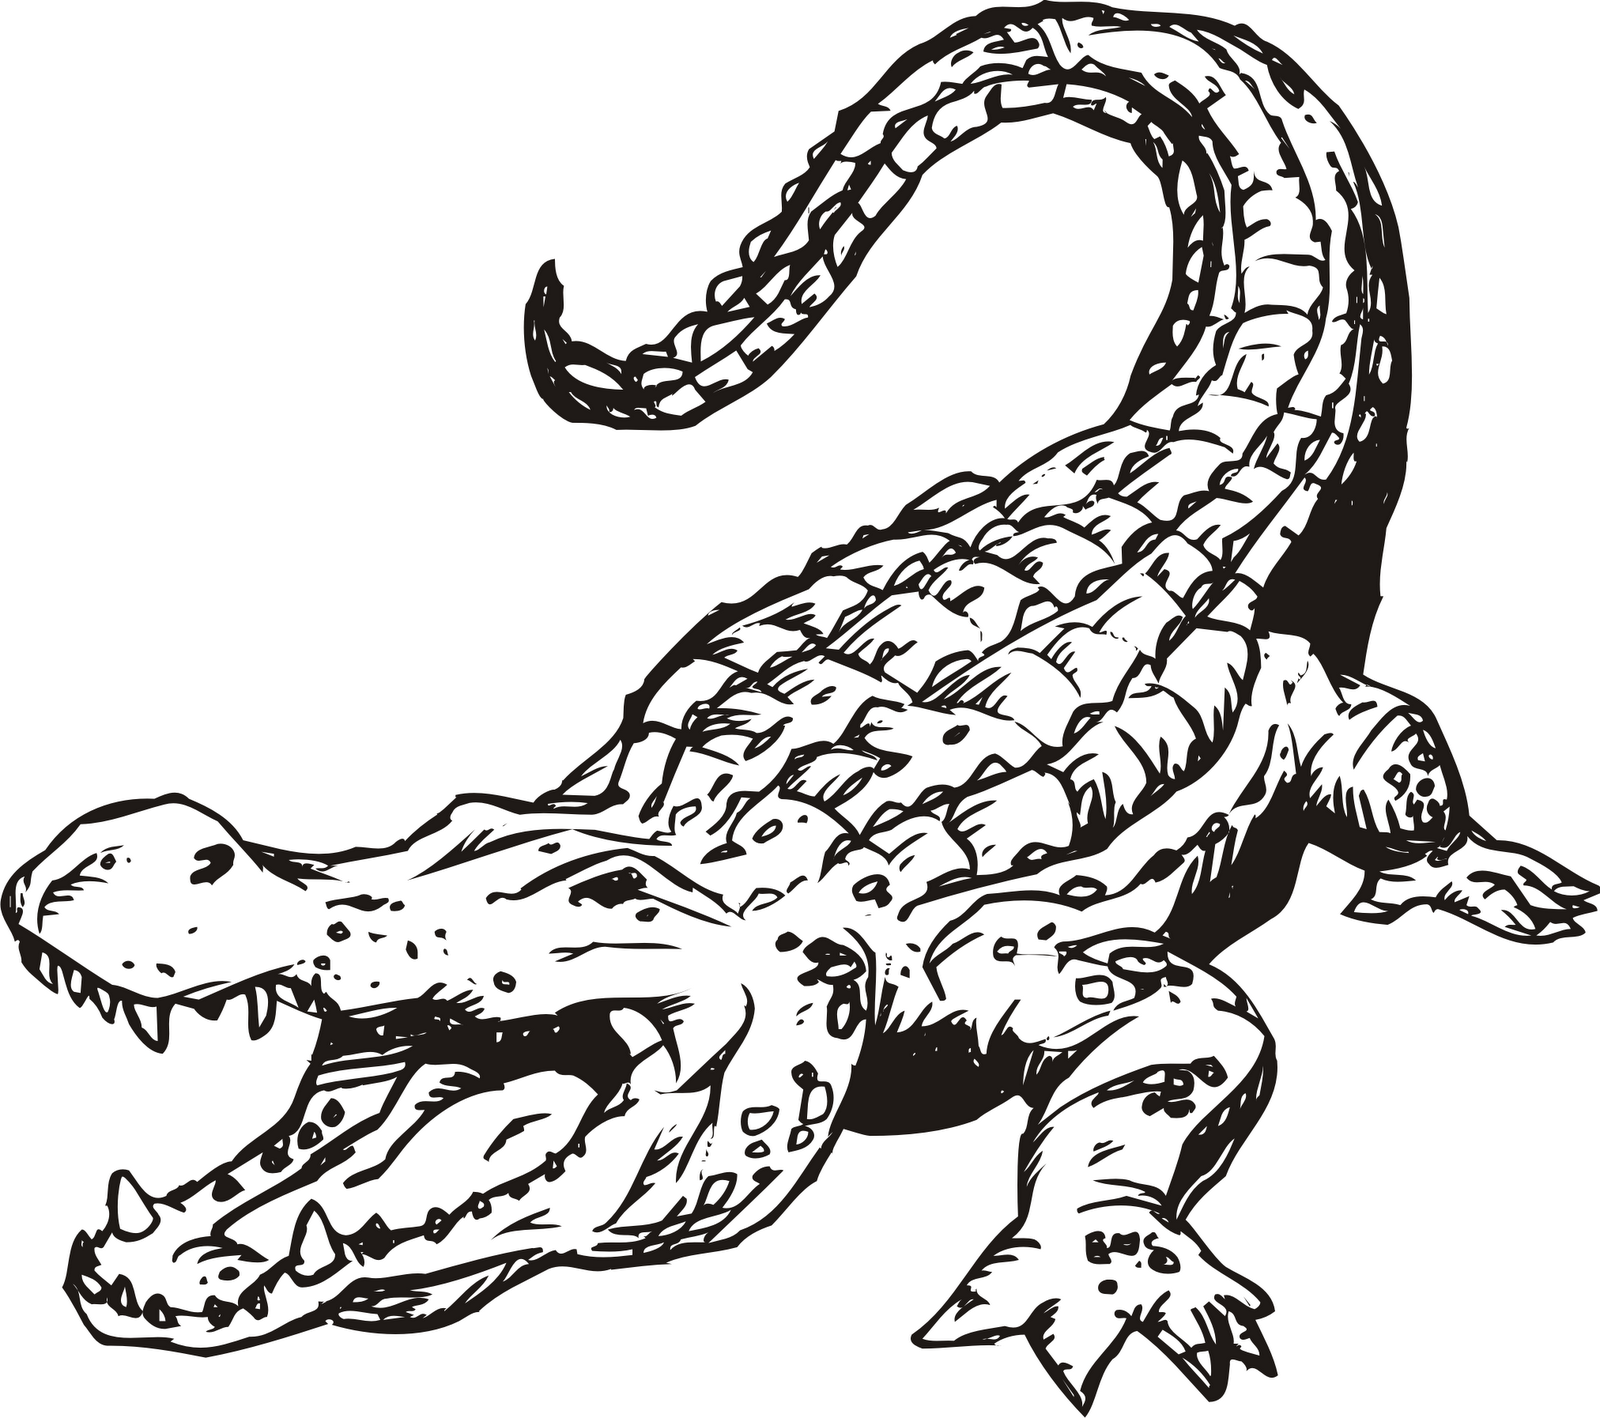 Alligator Clip Art Free - ClipArt Best - ClipArt Best | daughter ...